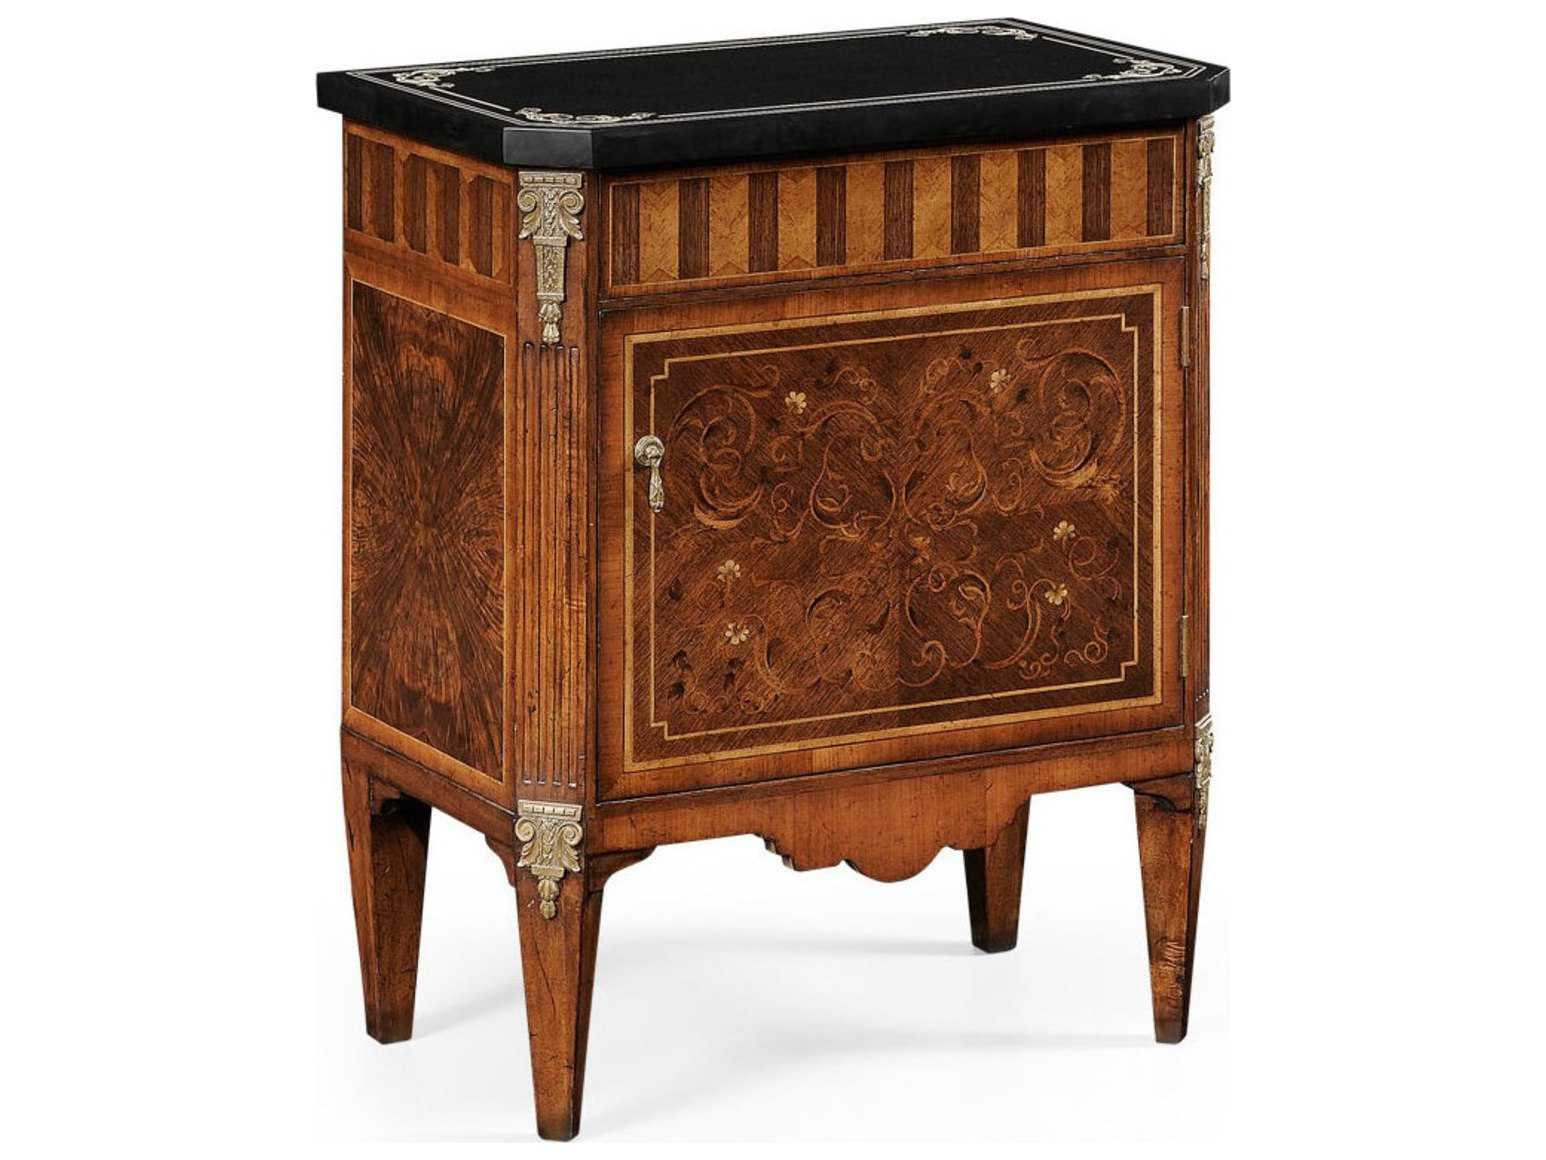 Jonathan Charles Venetian Medium Satinwood Console Cabinet  : JC494178zm from www.luxedecor.com size 1546 x 1160 jpeg 118kB